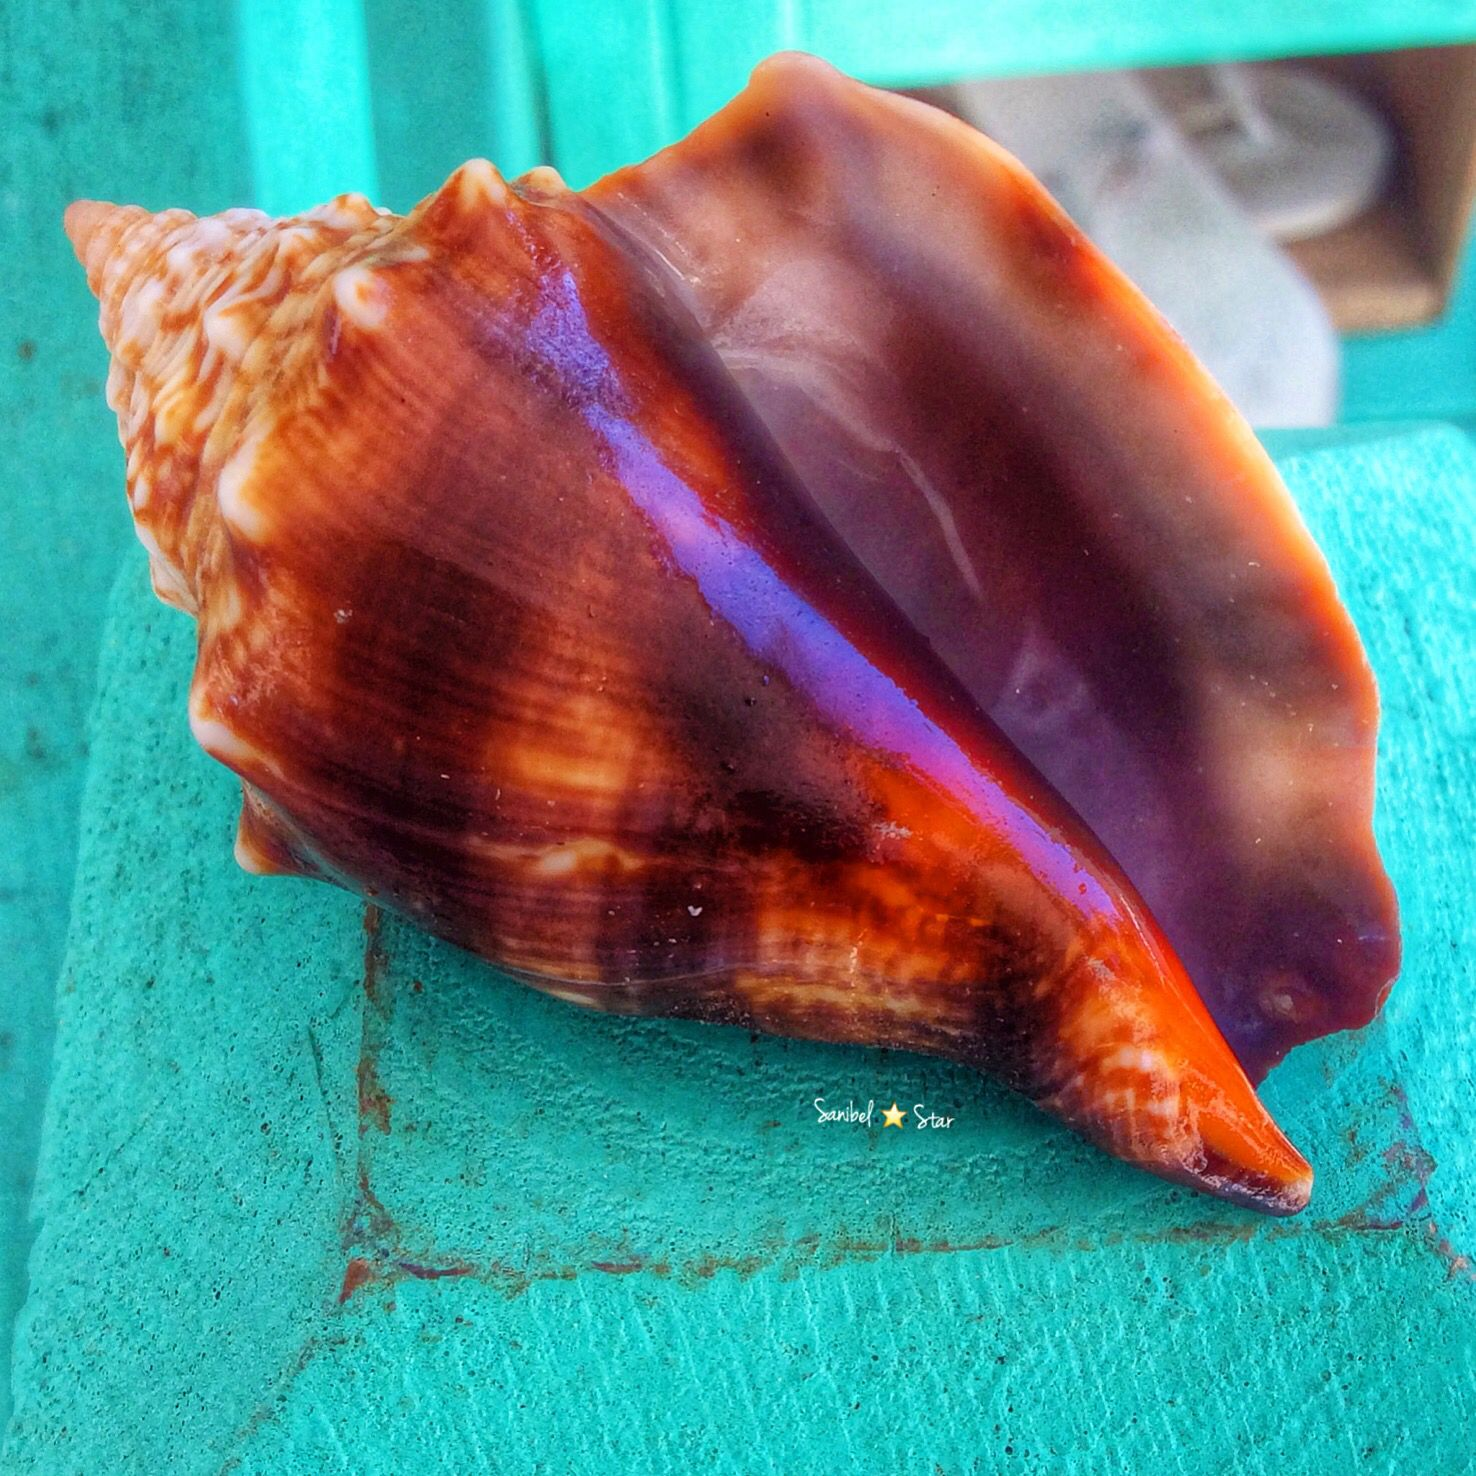 Conch country sanibelstar conch seashell seashells conch country sanibelstar conch seashell biocorpaavc Choice Image